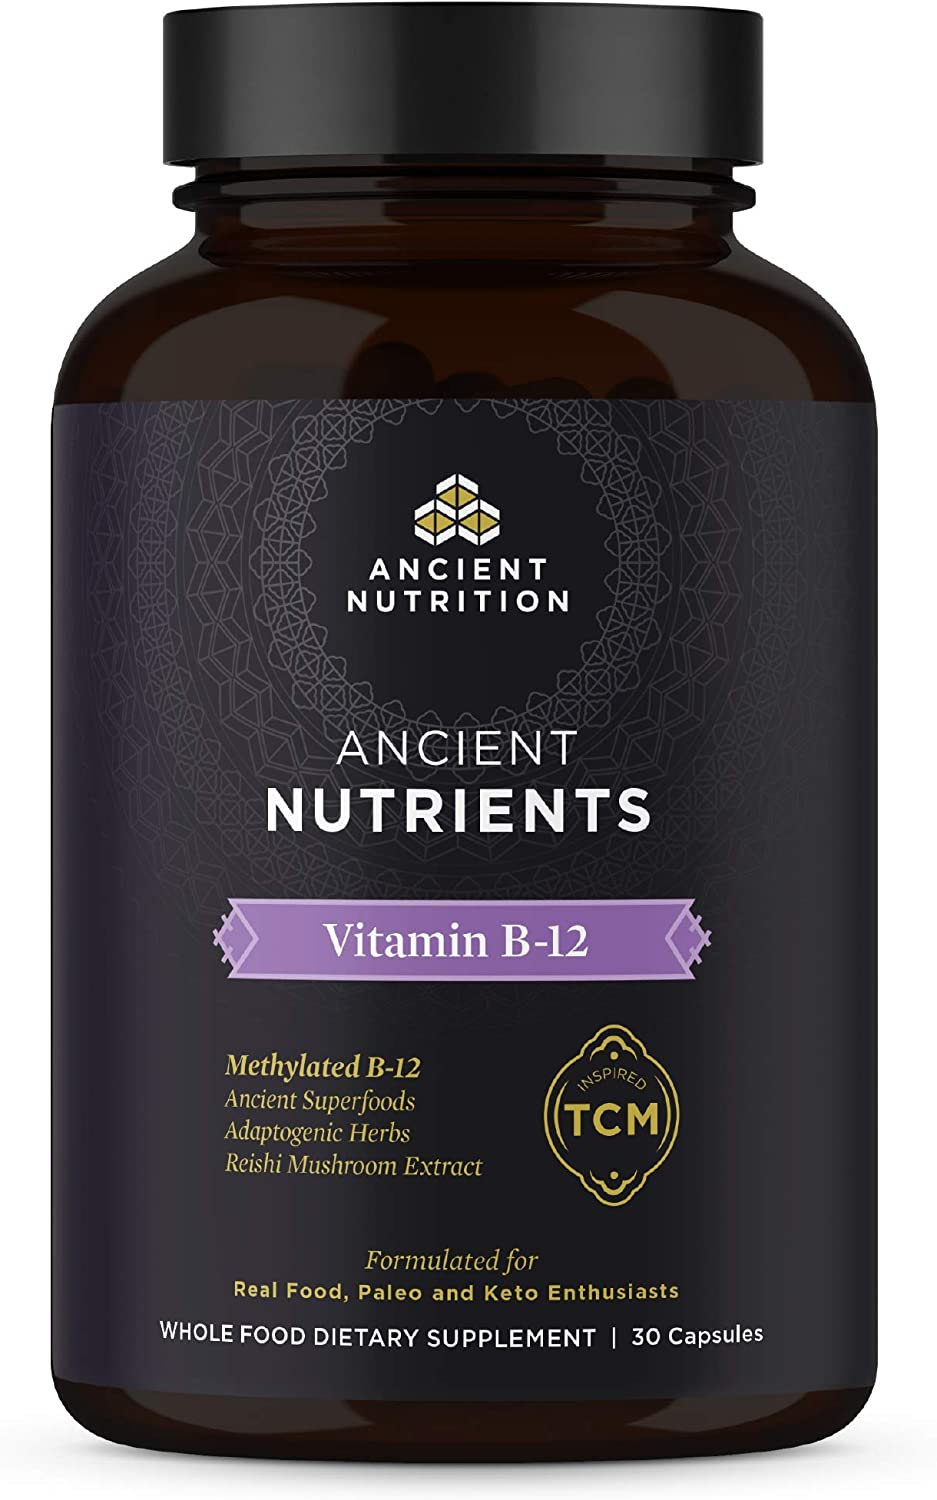 Ancient Nutrition, Ancient Nutrients Vitamin B-12 - Read Food, Adaptogenic Herbs, Enzyme Activated, Paleo & Keto Friendly, 30 Capsules